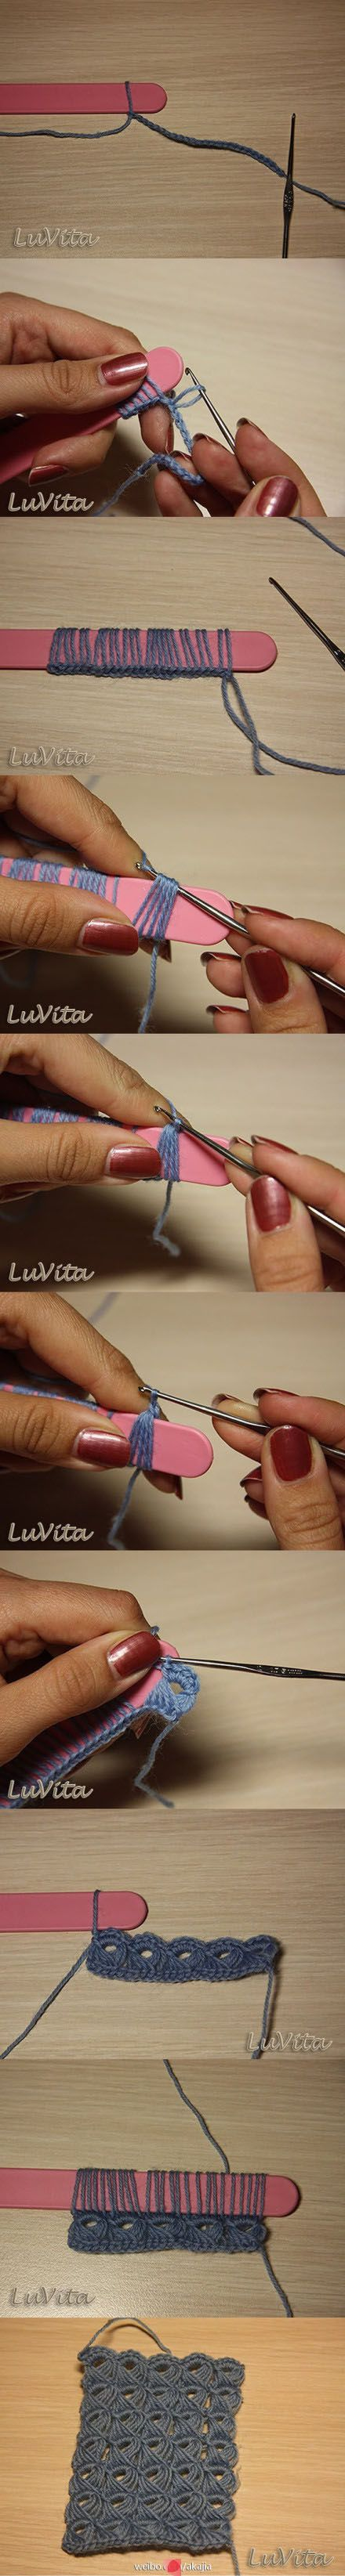 Tip for Crocheting Broomstick Lace.